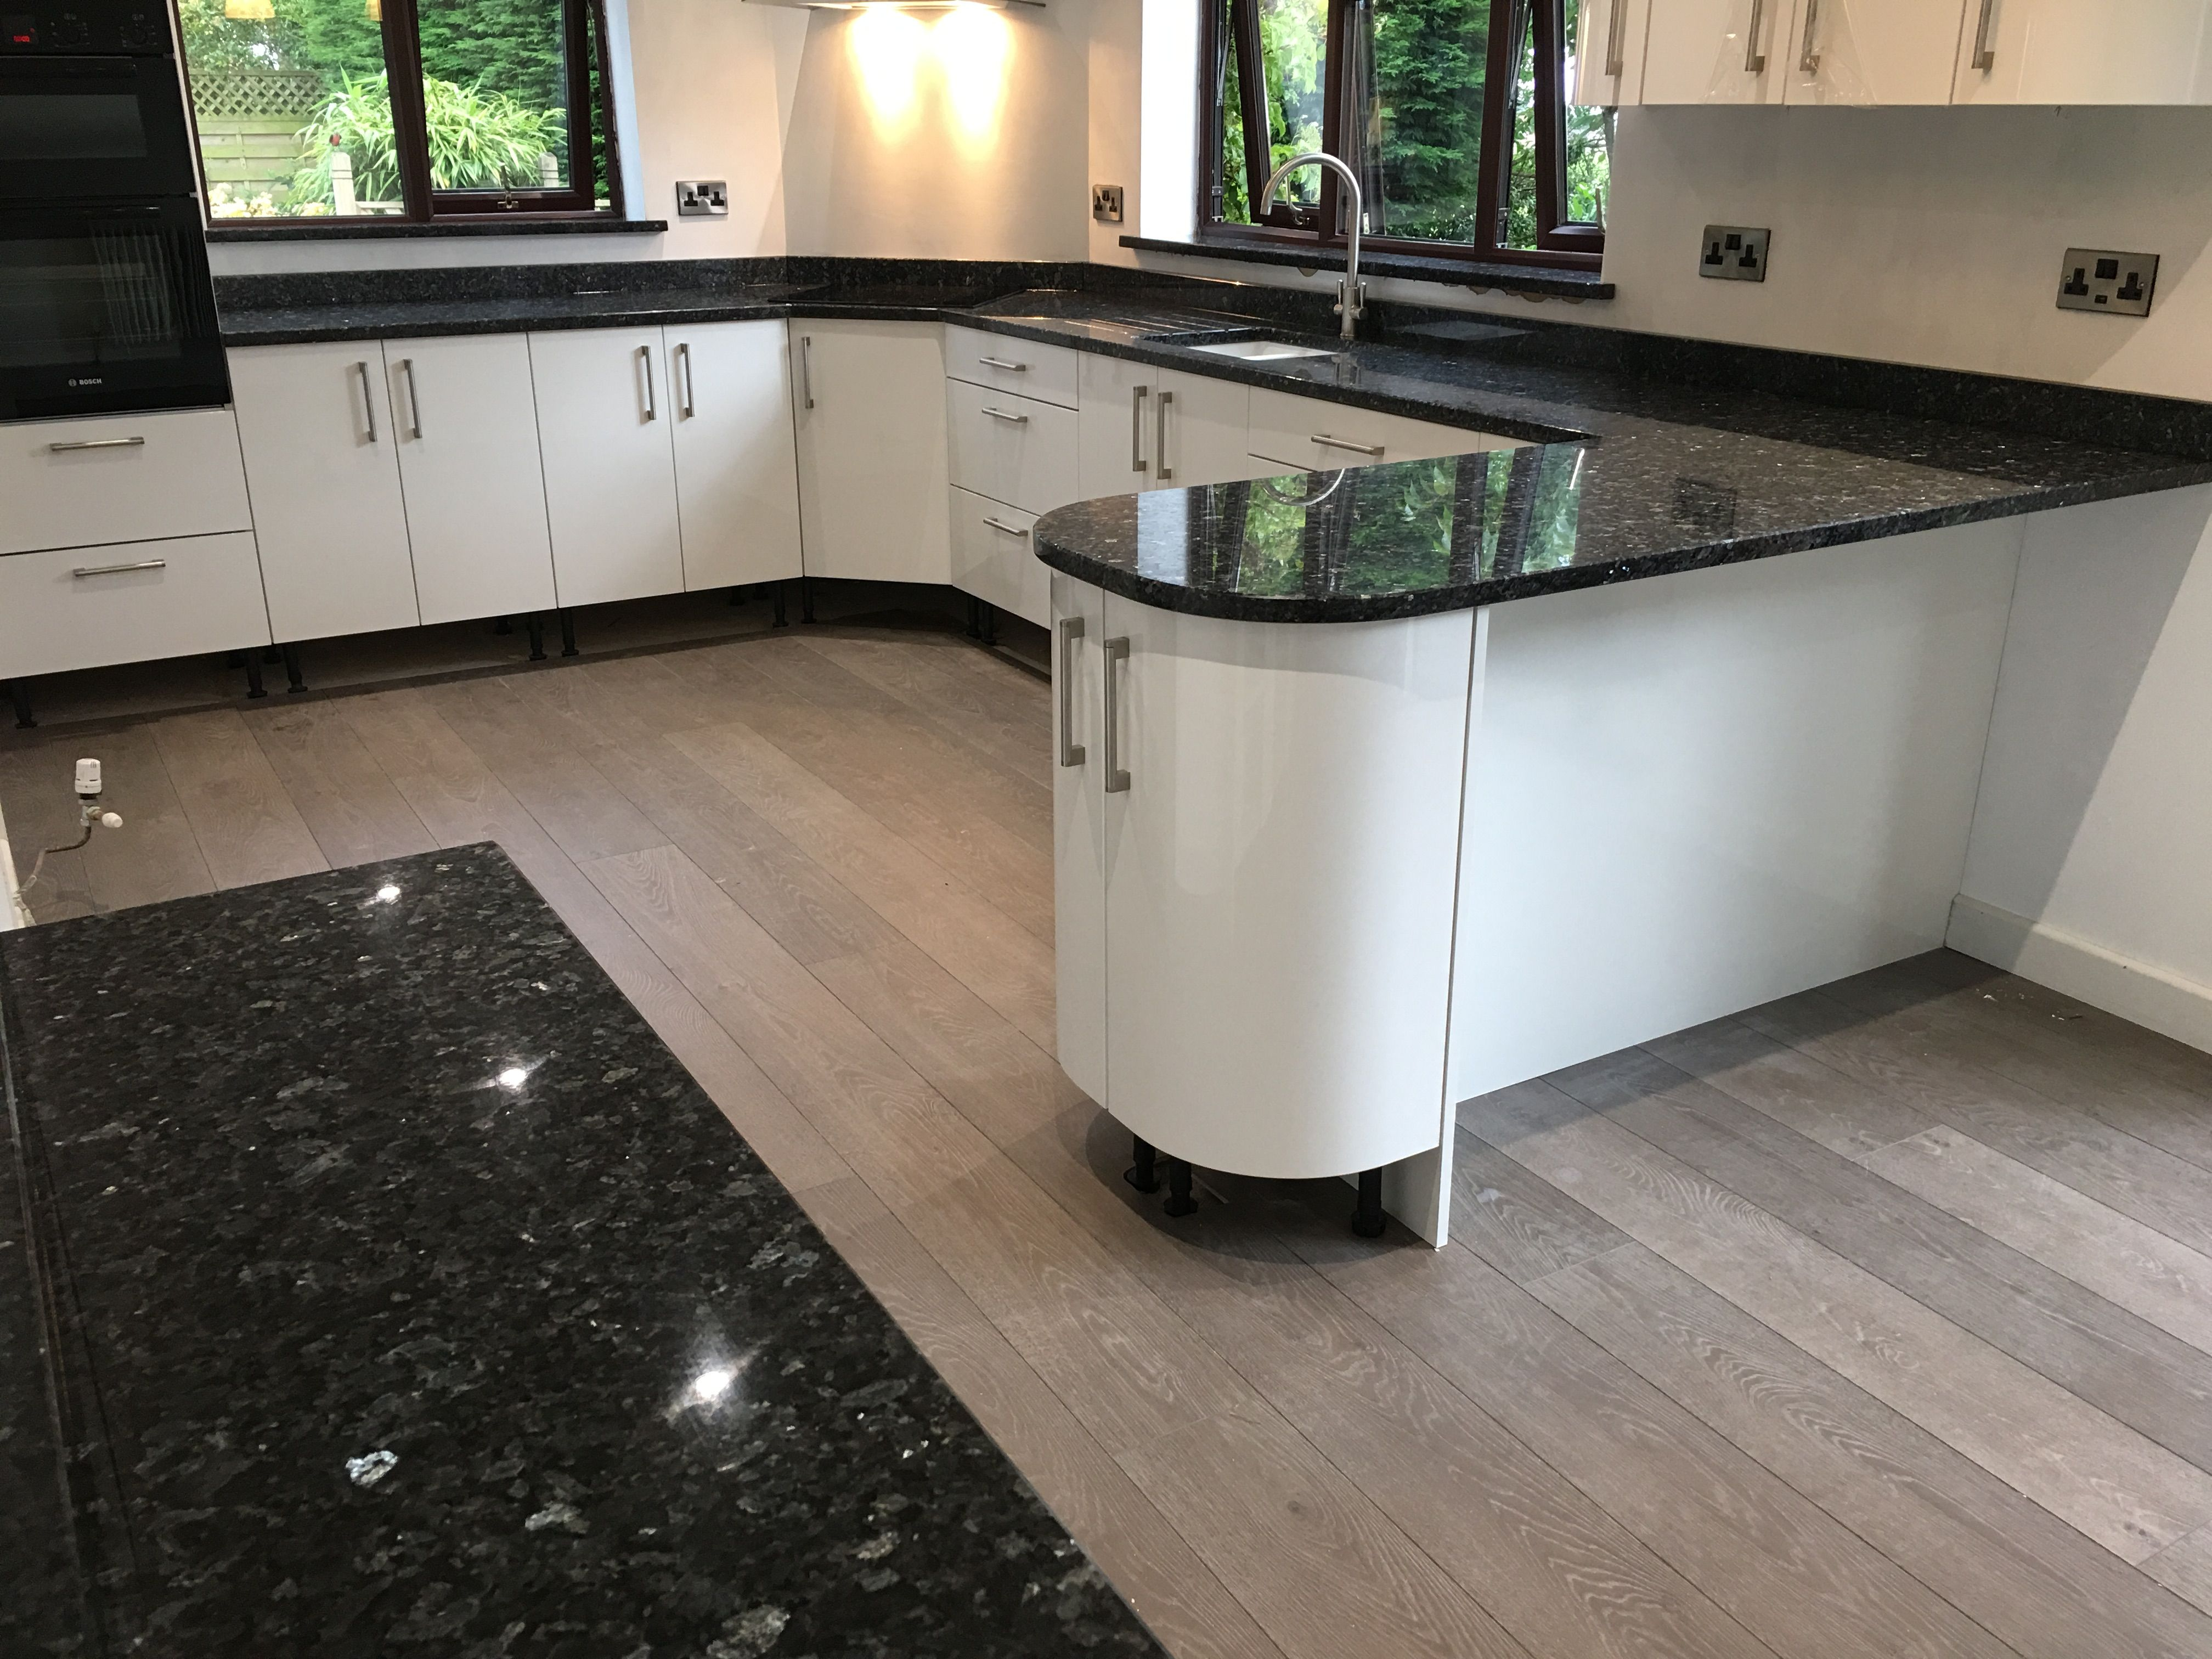 Emerald Pearl Granite Worktops In Buckley On A White Gloss Kitchen